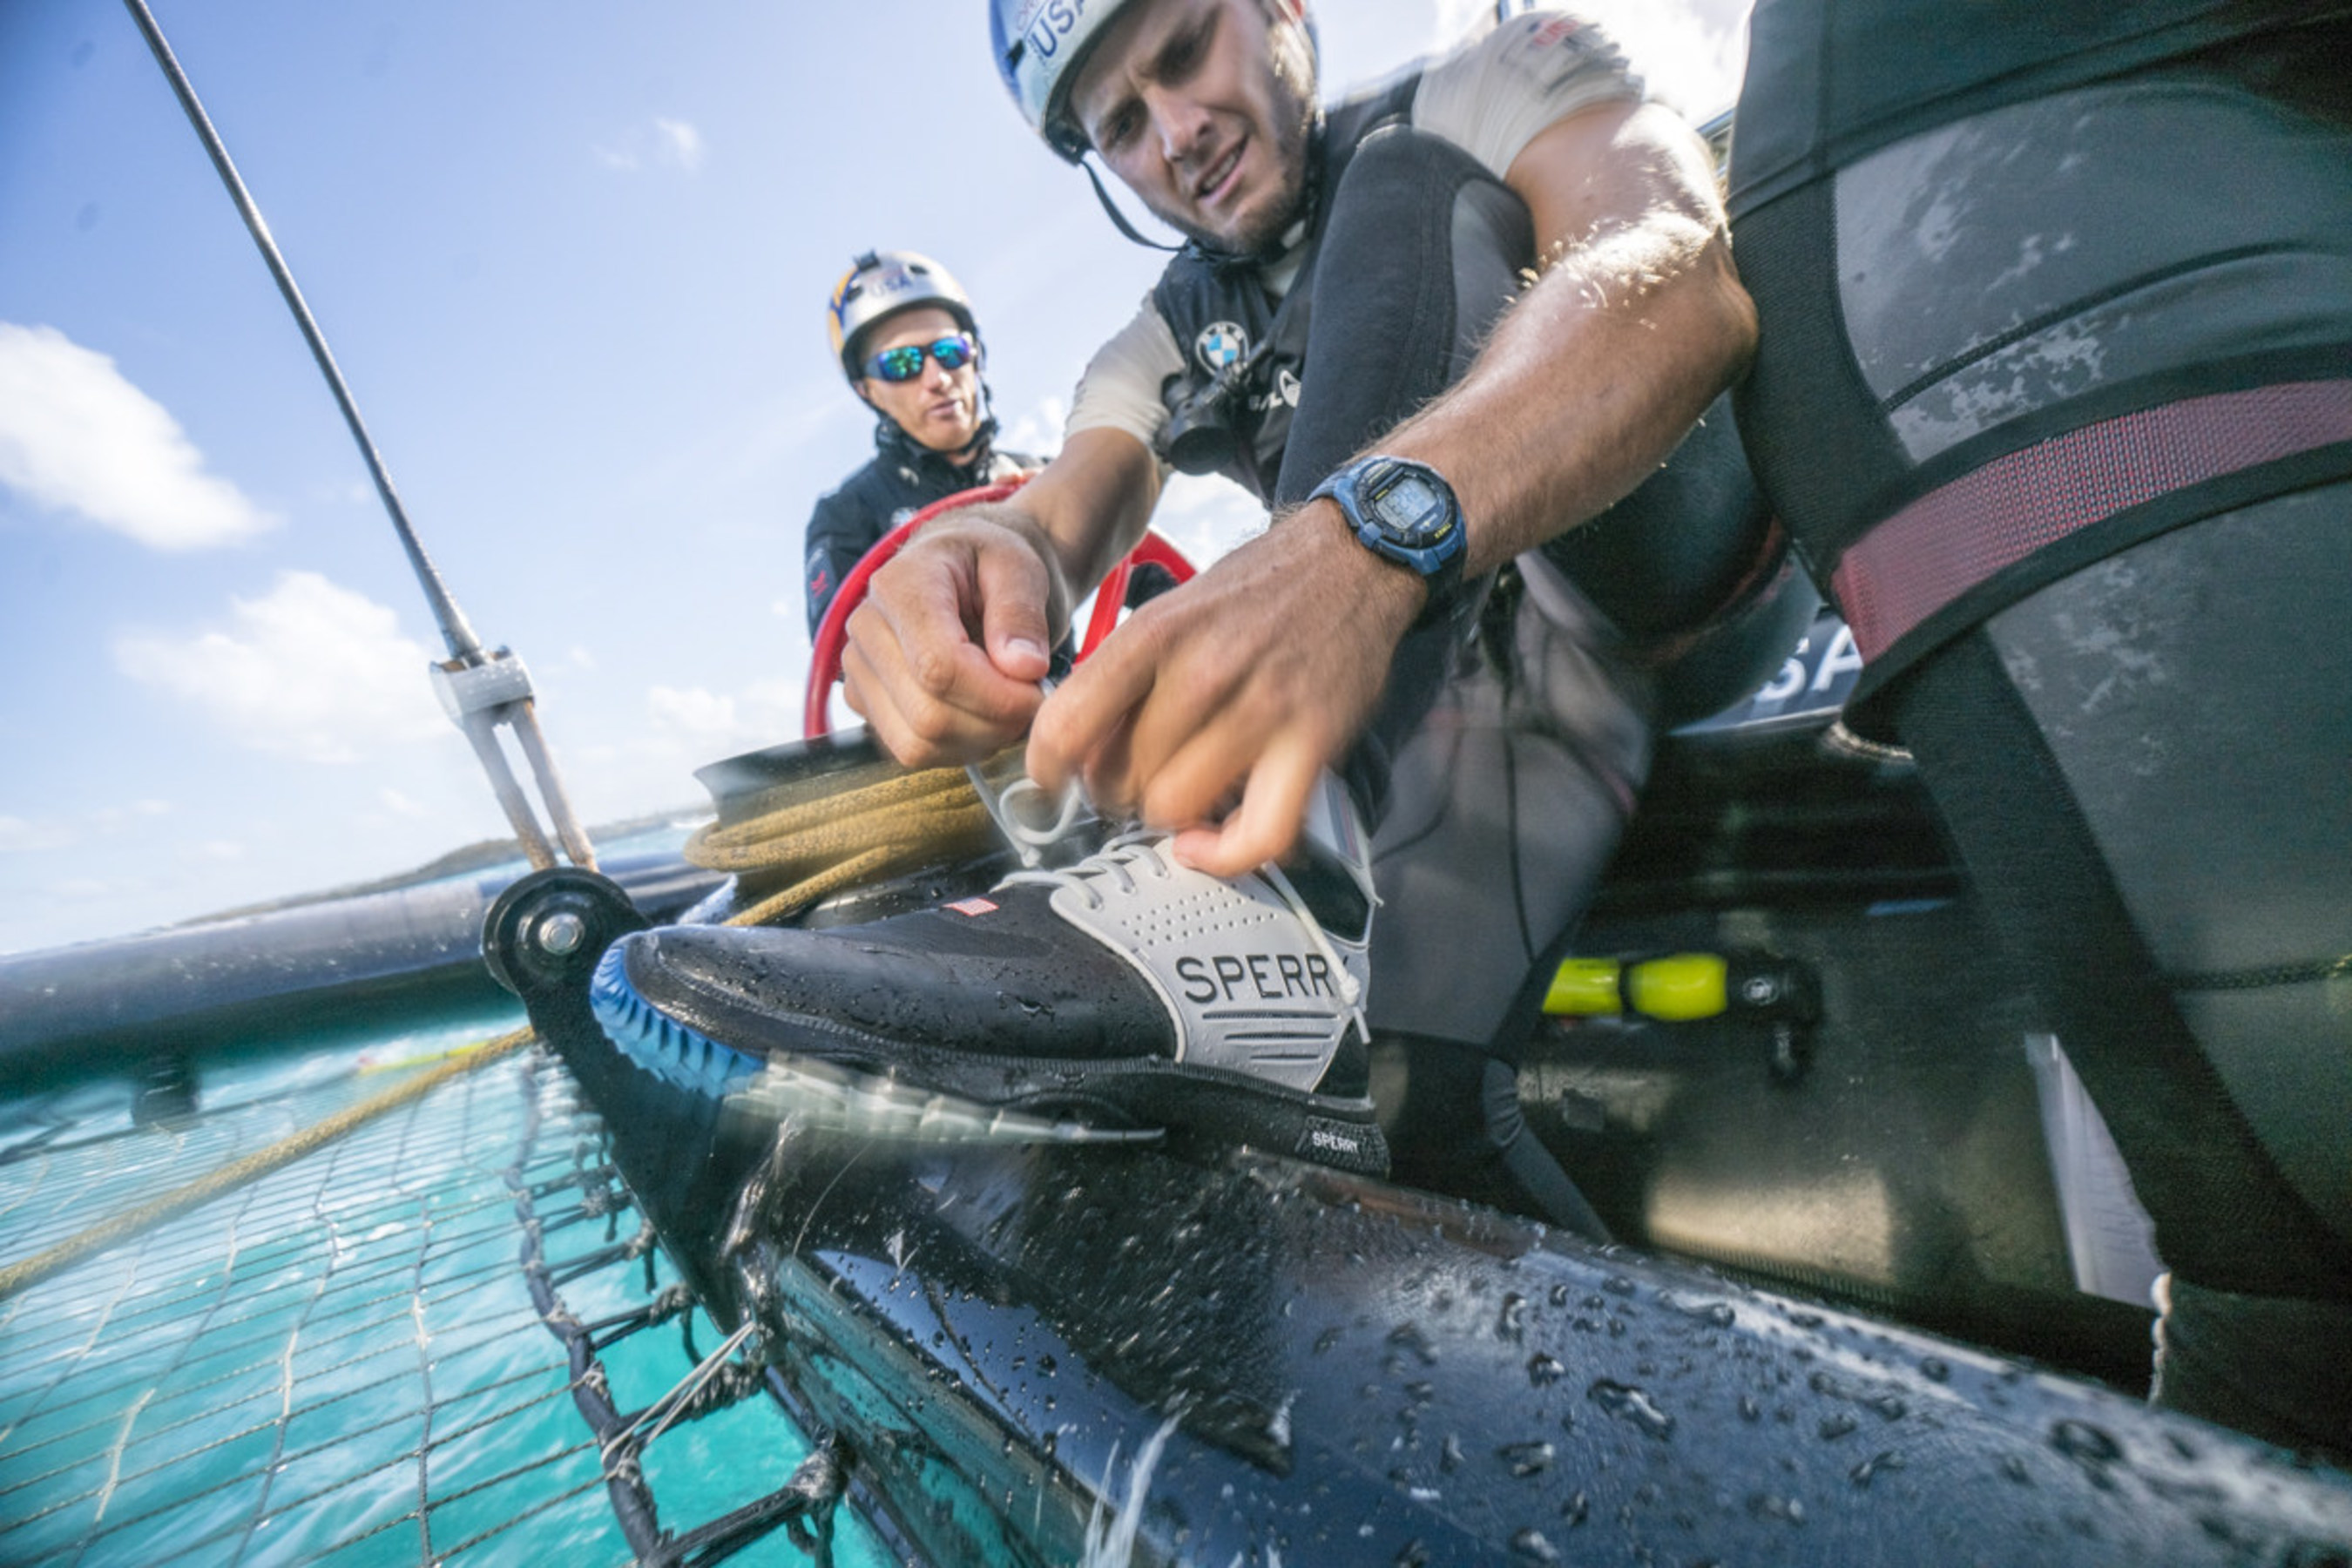 ORACLE TEAM USA athlete TJ Johnson laces up the new Sperry 7 SEAS Pro shoe before racing Photo Credit: Sam Greenfield